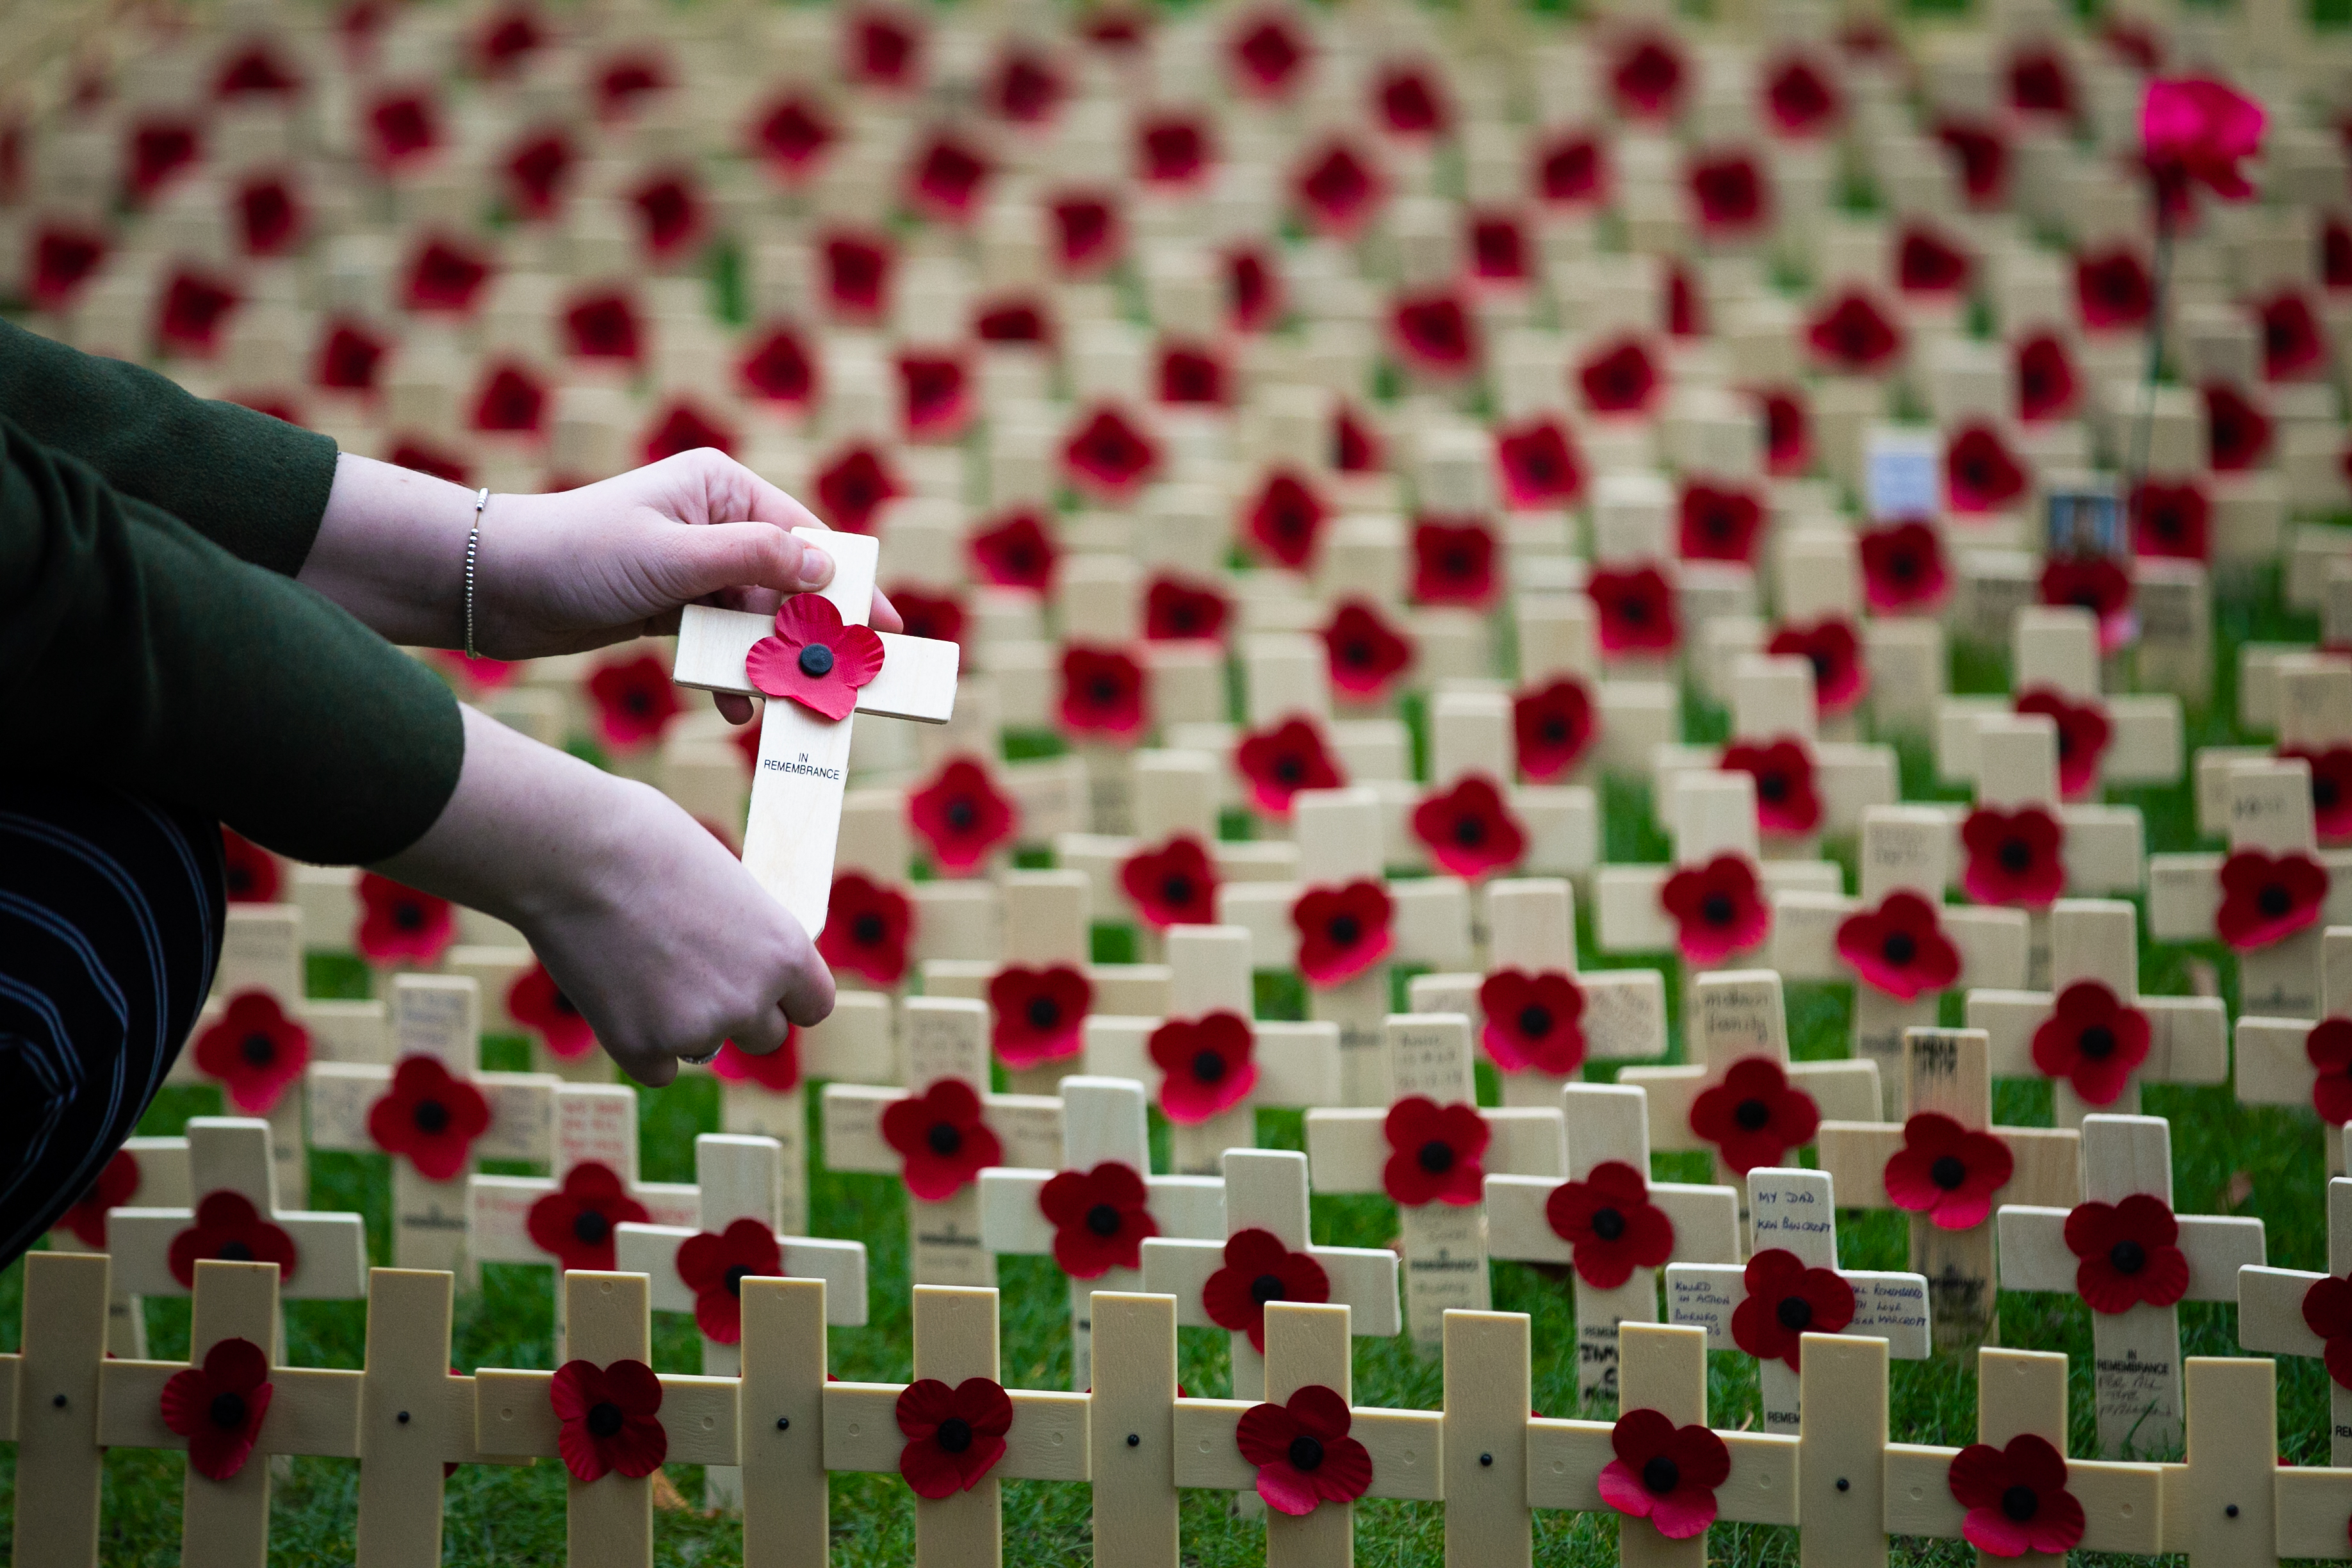 Remembrance Garden in Princes Street Gardens in Edinburgh (Andrew Cawley / DC Thomson)